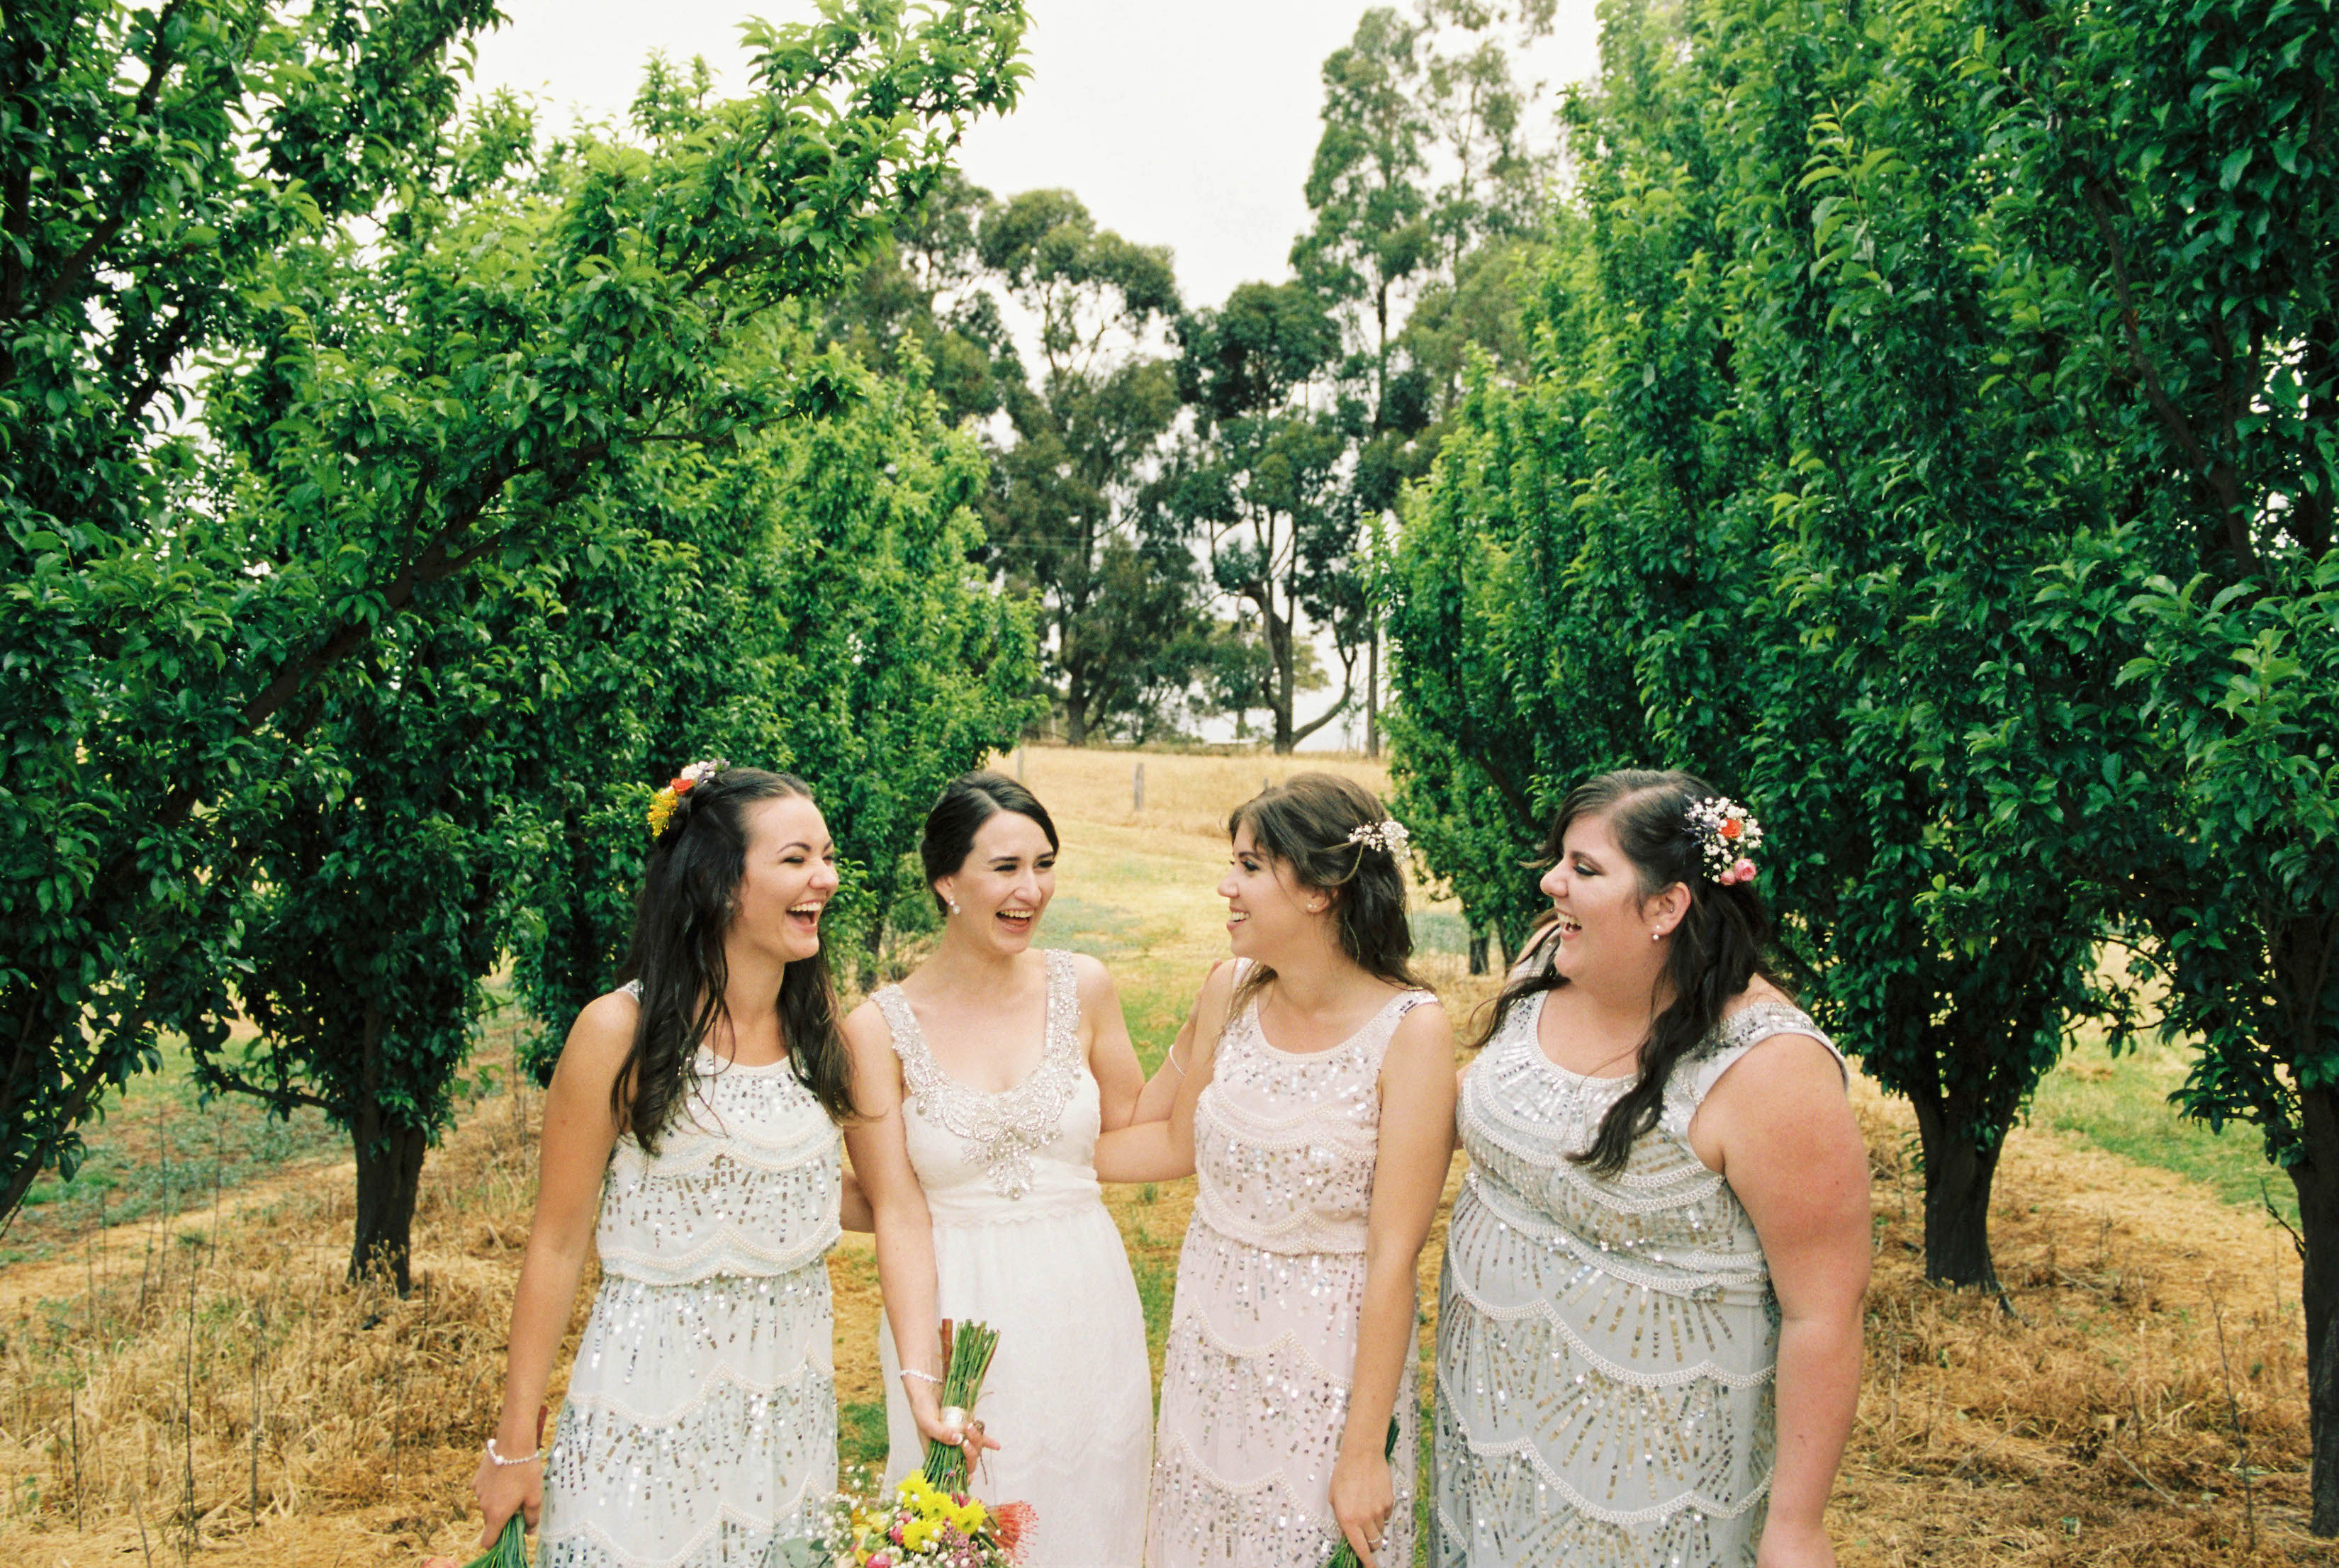 Authentic South West Wedding Photography of the bride and her bridesmaids laughing together